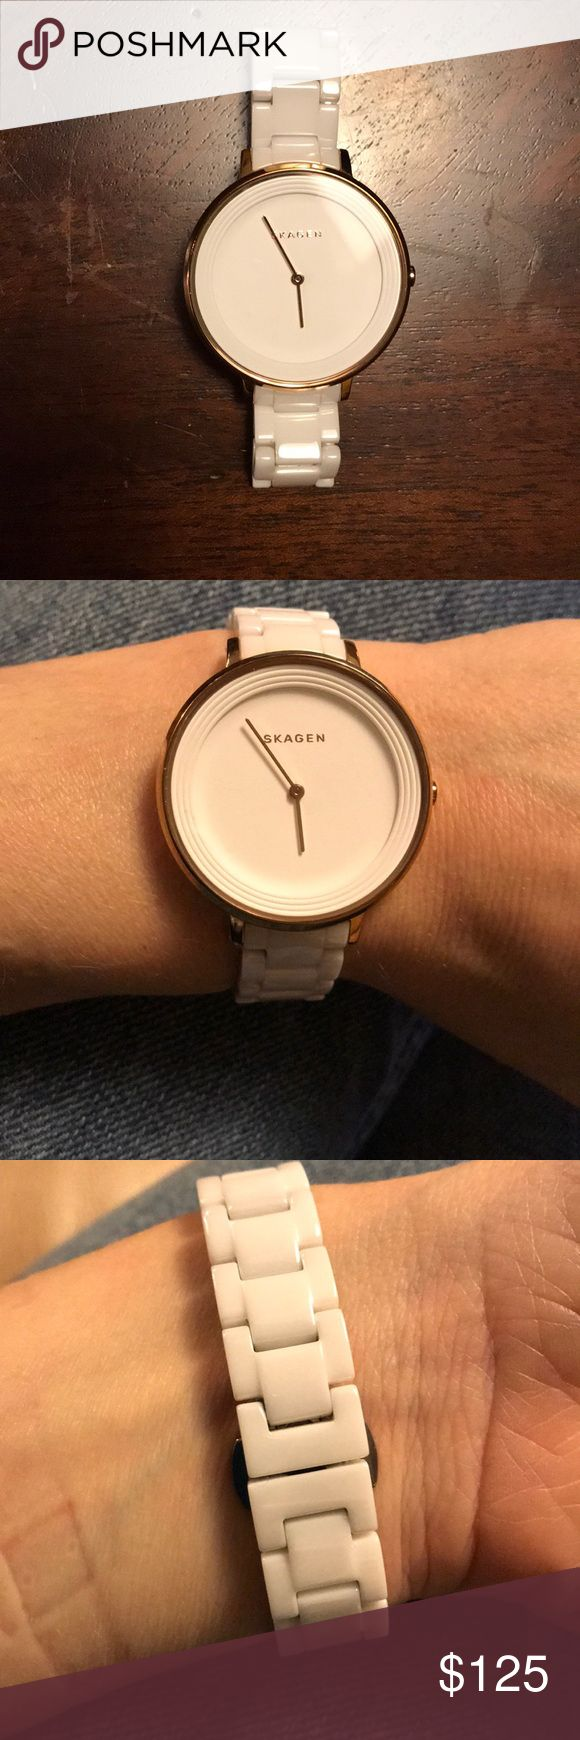 Skagen white ceramic watch Bracelet links are ceramic and will include the extras removed for sizing. Worn infrequently as I also have an Apple Watch as my primary timepiece. White face with rose gold trim around face. No signs of wear. Great condition and a great large face watch Skagen Accessories Watches